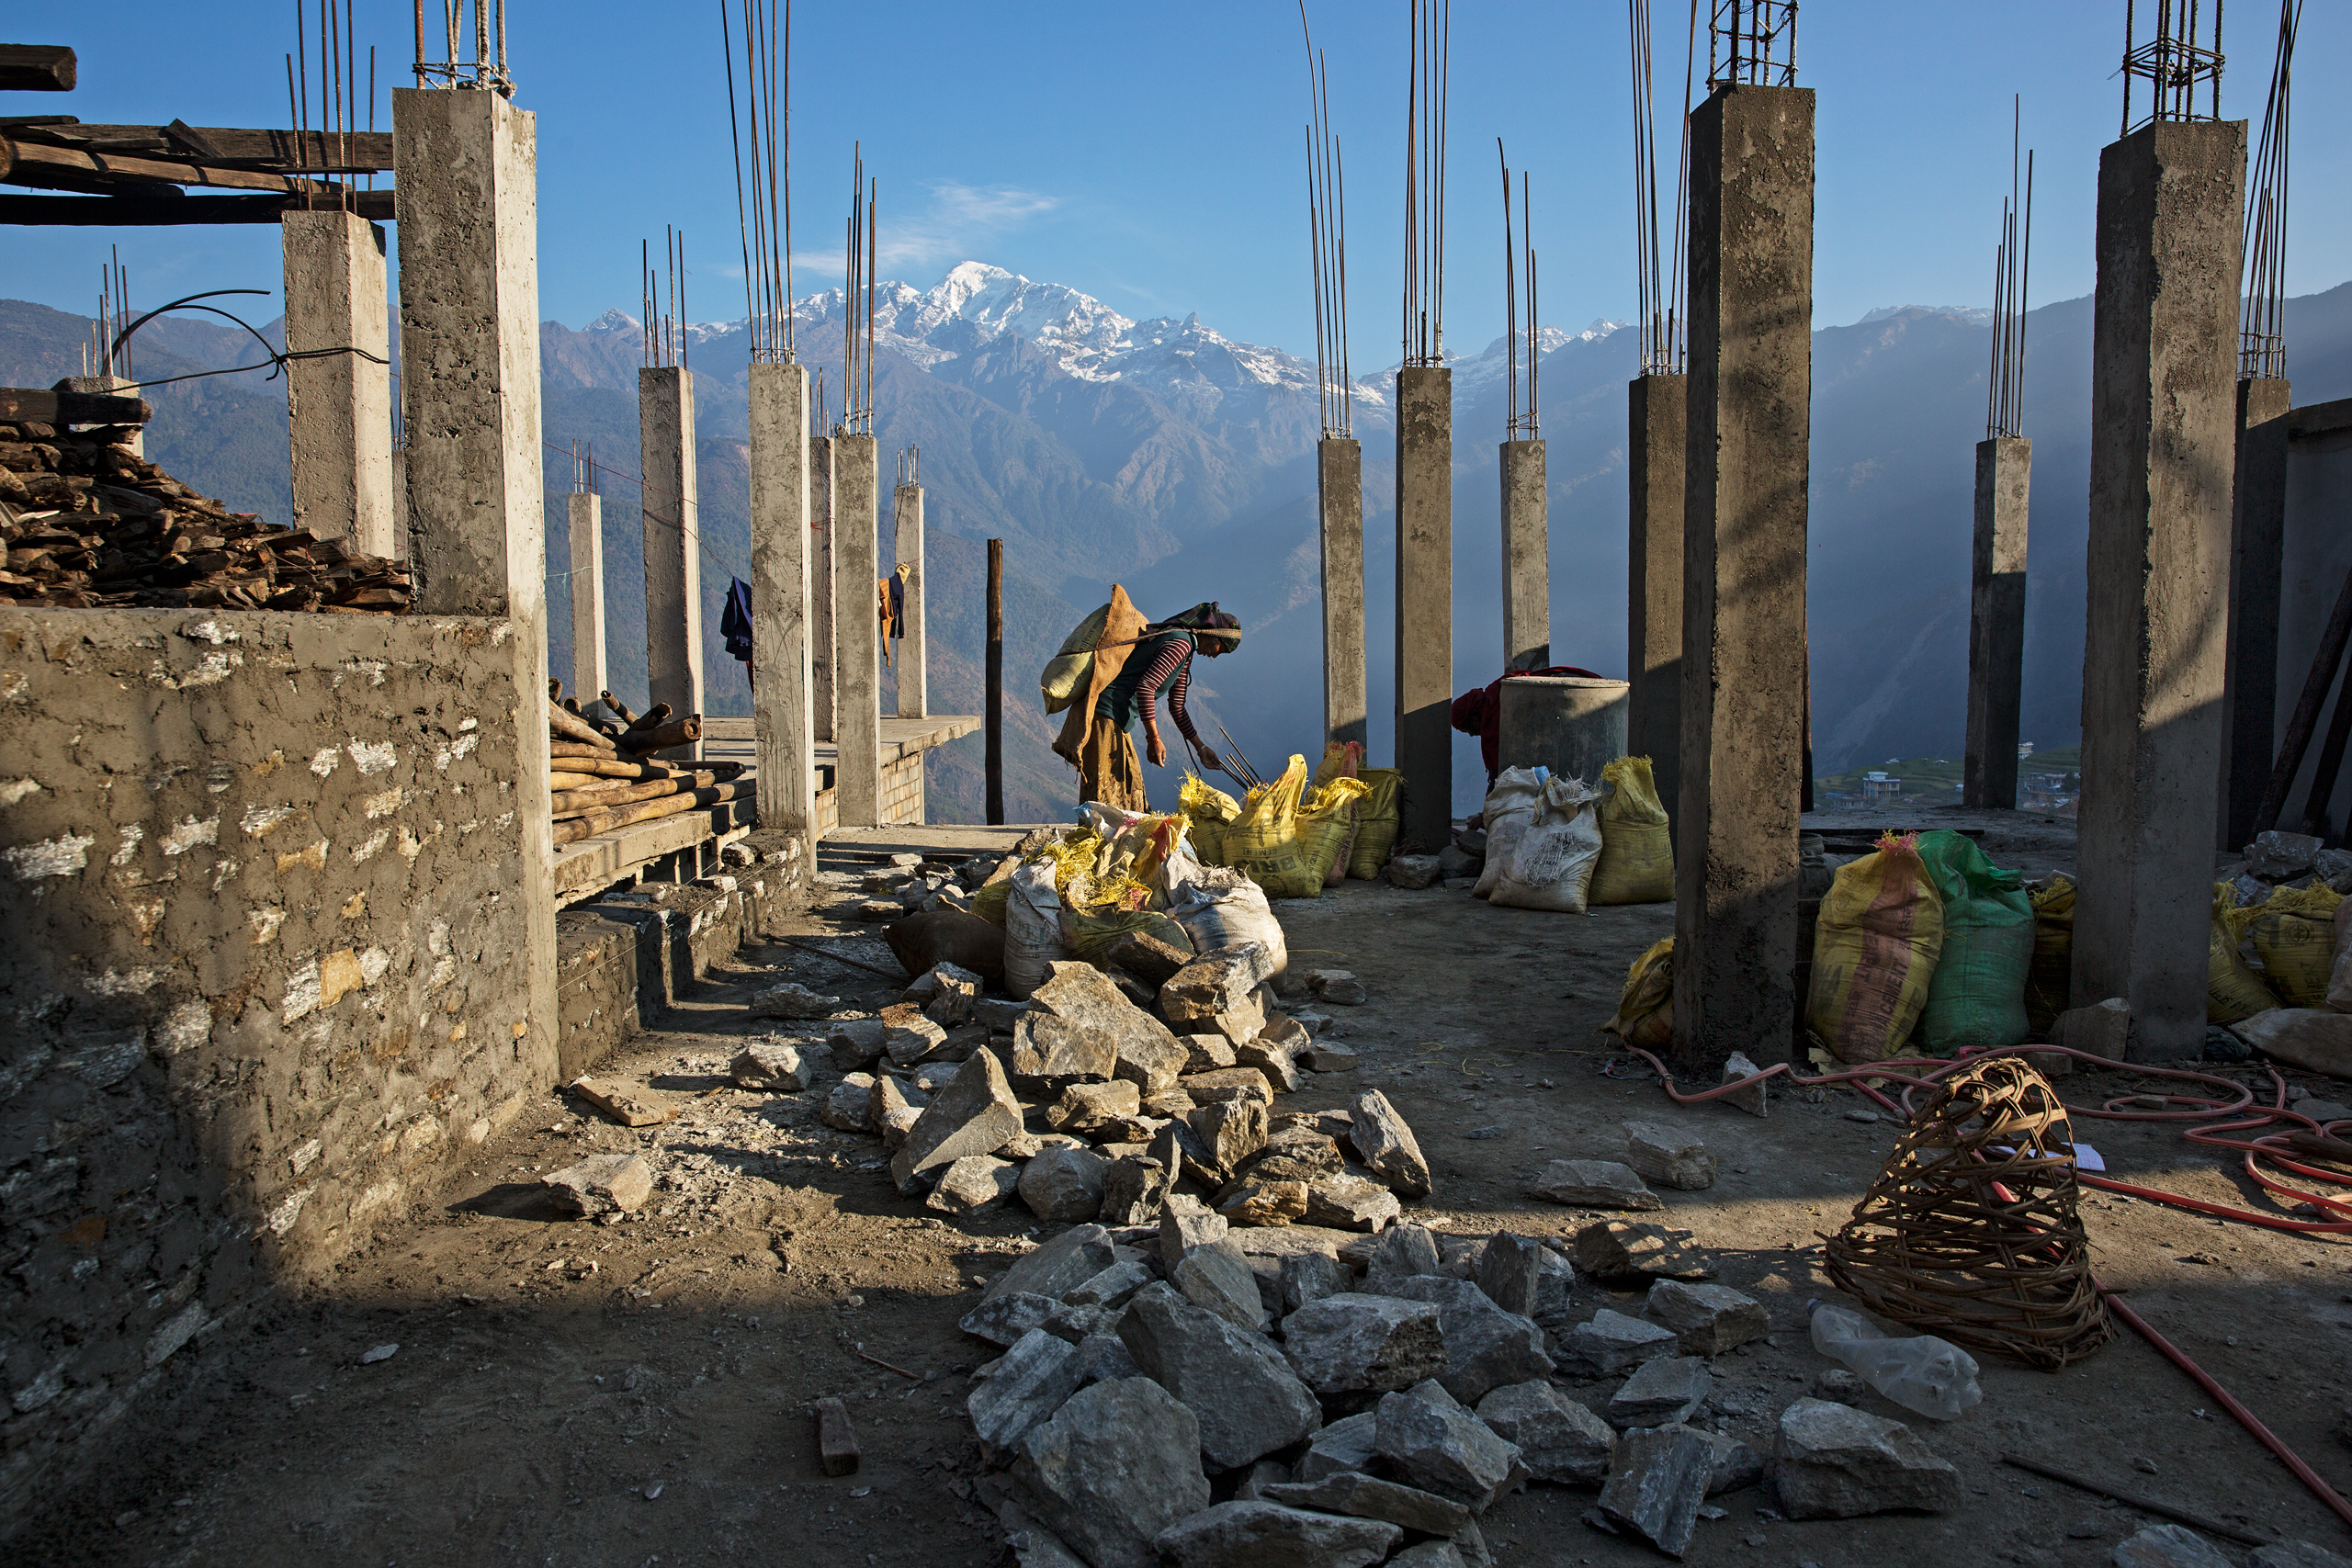 Nepal Earthquake: Rebuilding Is Slow a Year After | Time